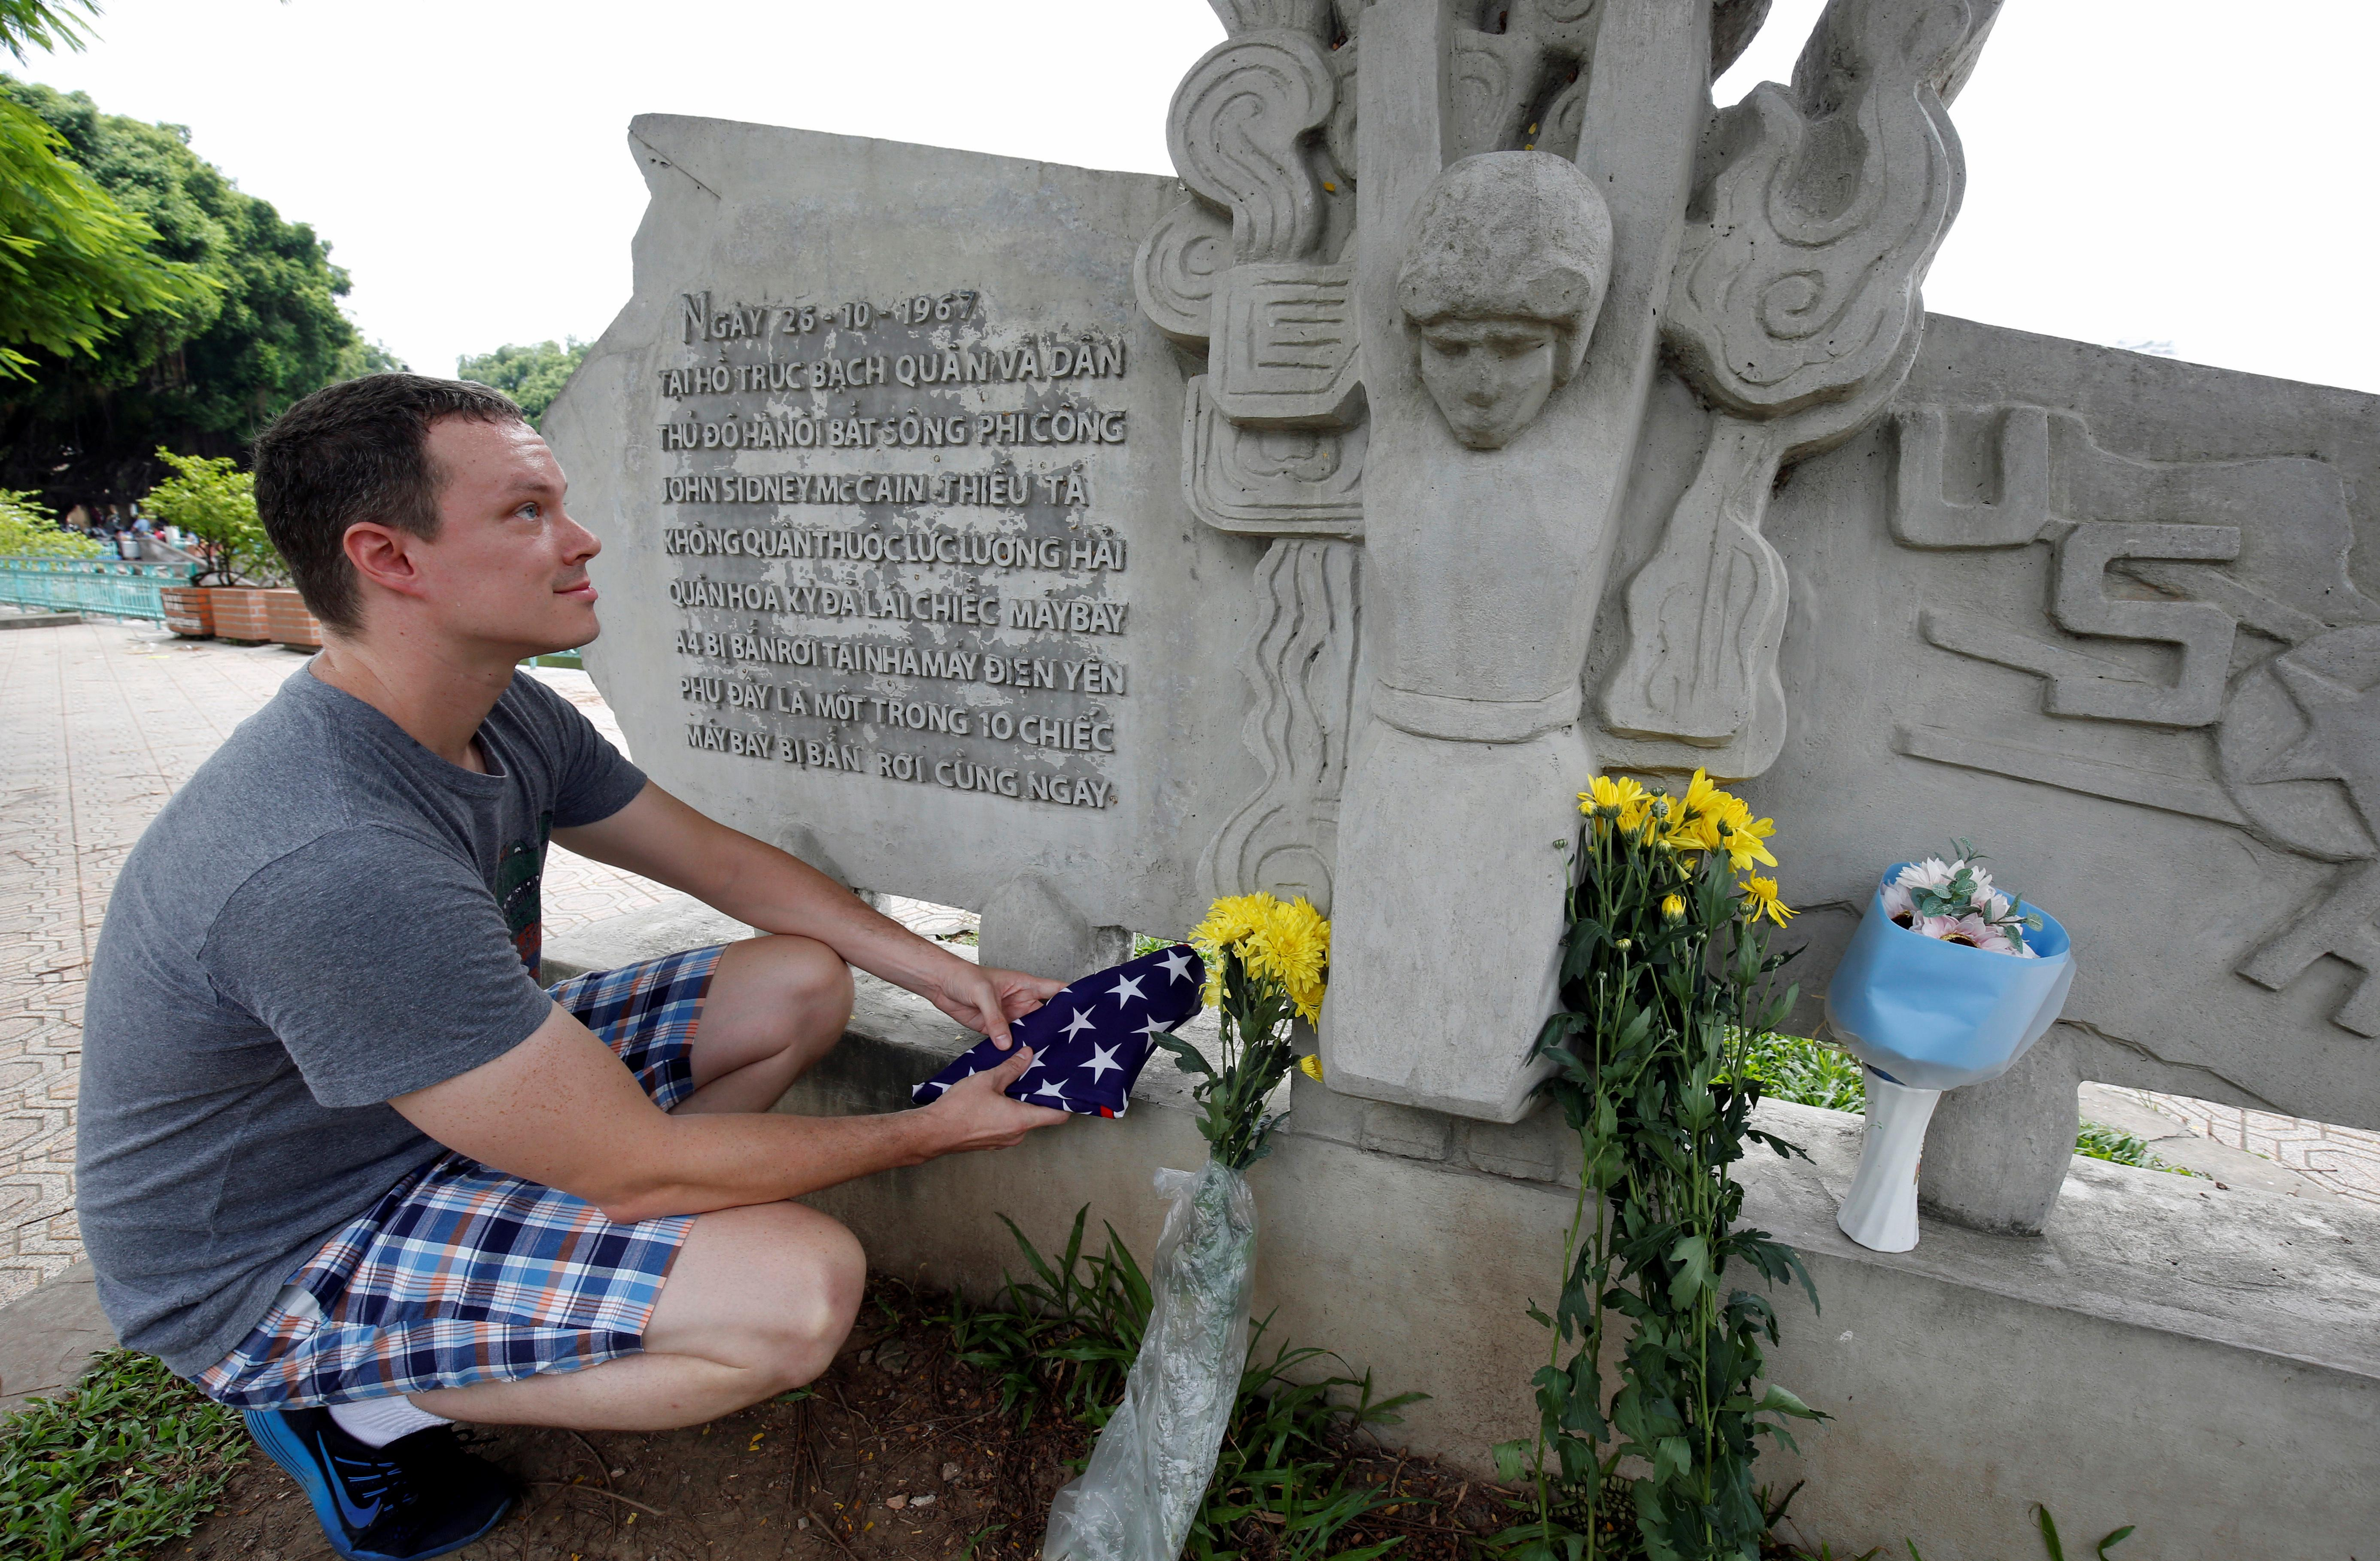 Flowers, tributes offered for McCain at Vietnam War crash site